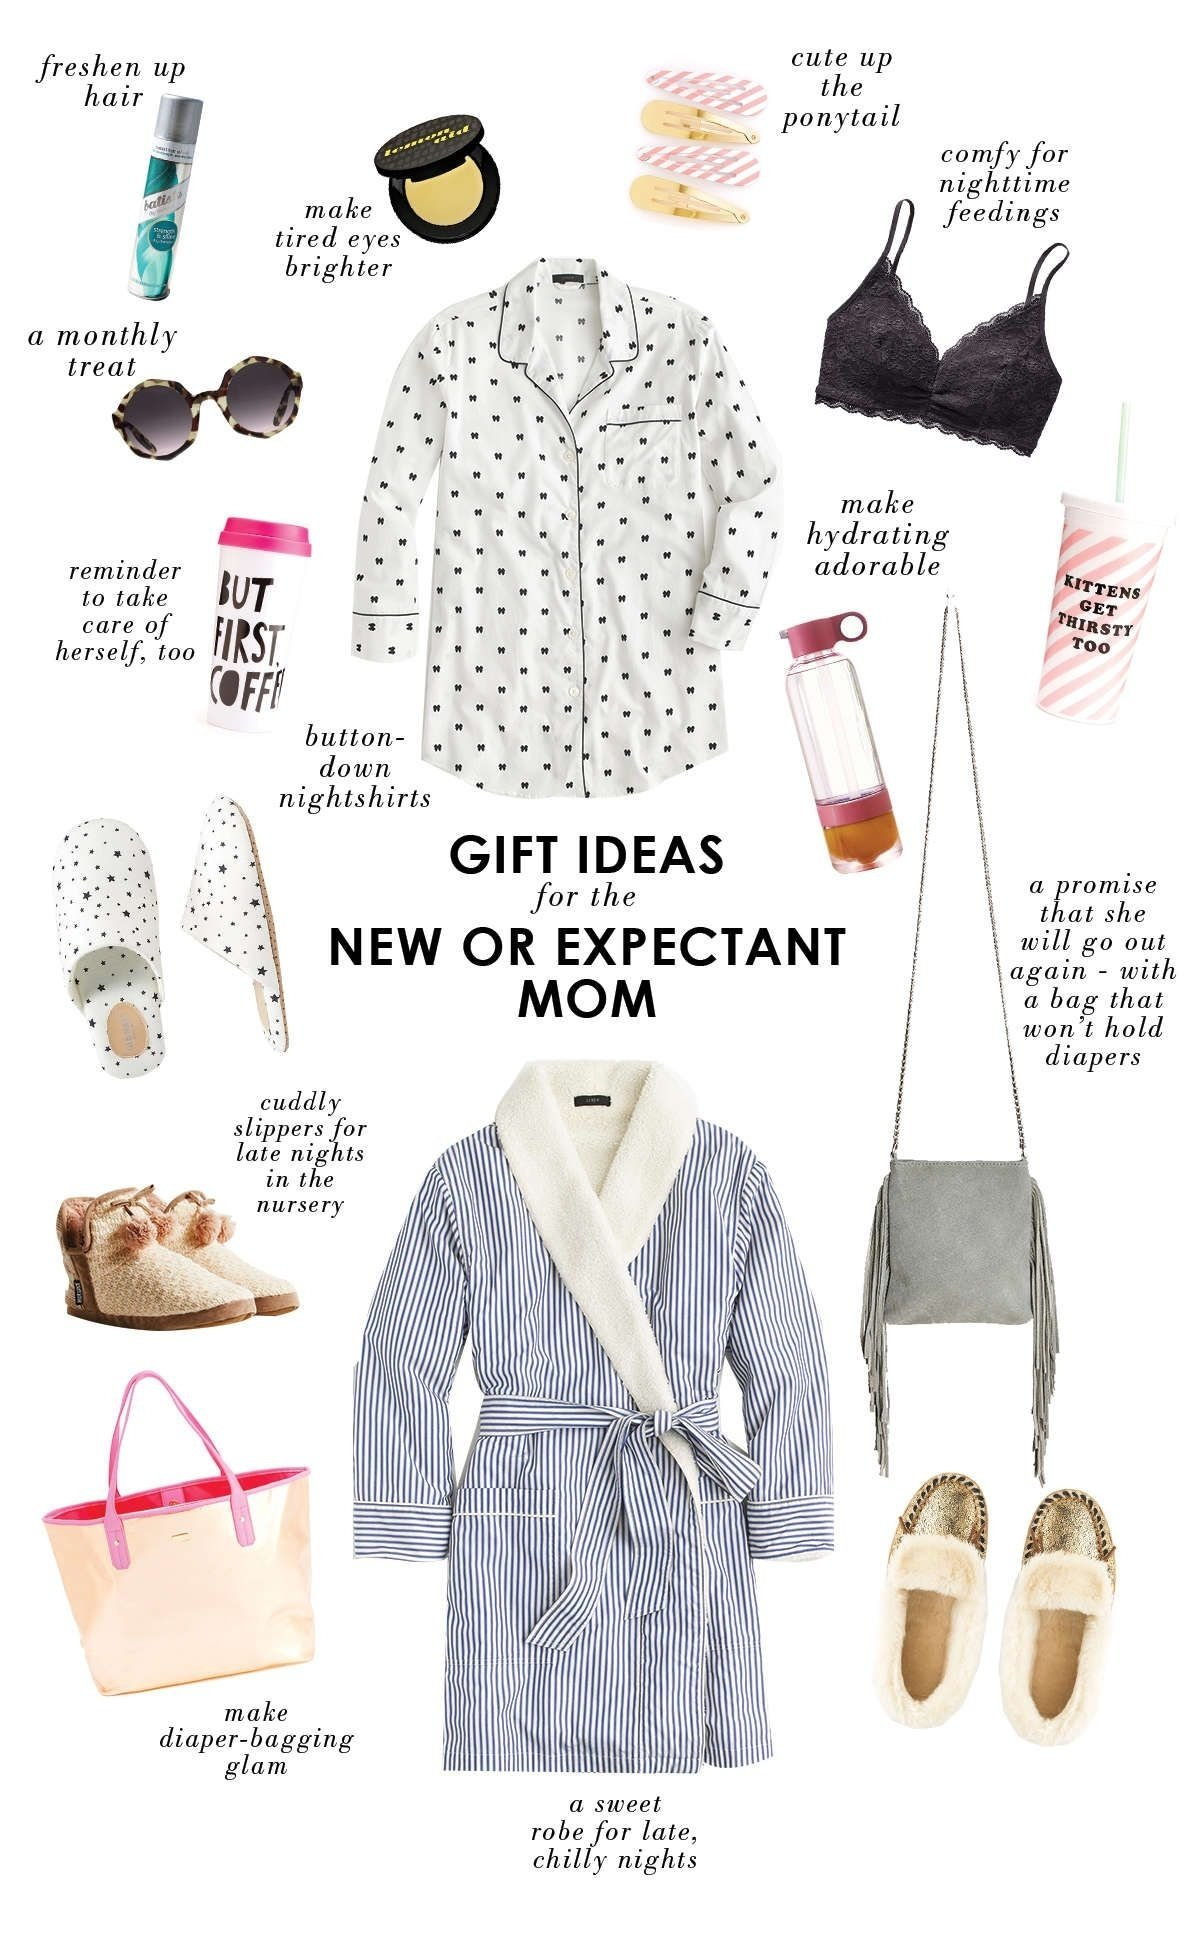 10 Most Popular Gift Ideas For Expecting Mothers gift ideas for a new or expectant mom gift babies and pregnancy 2 2020